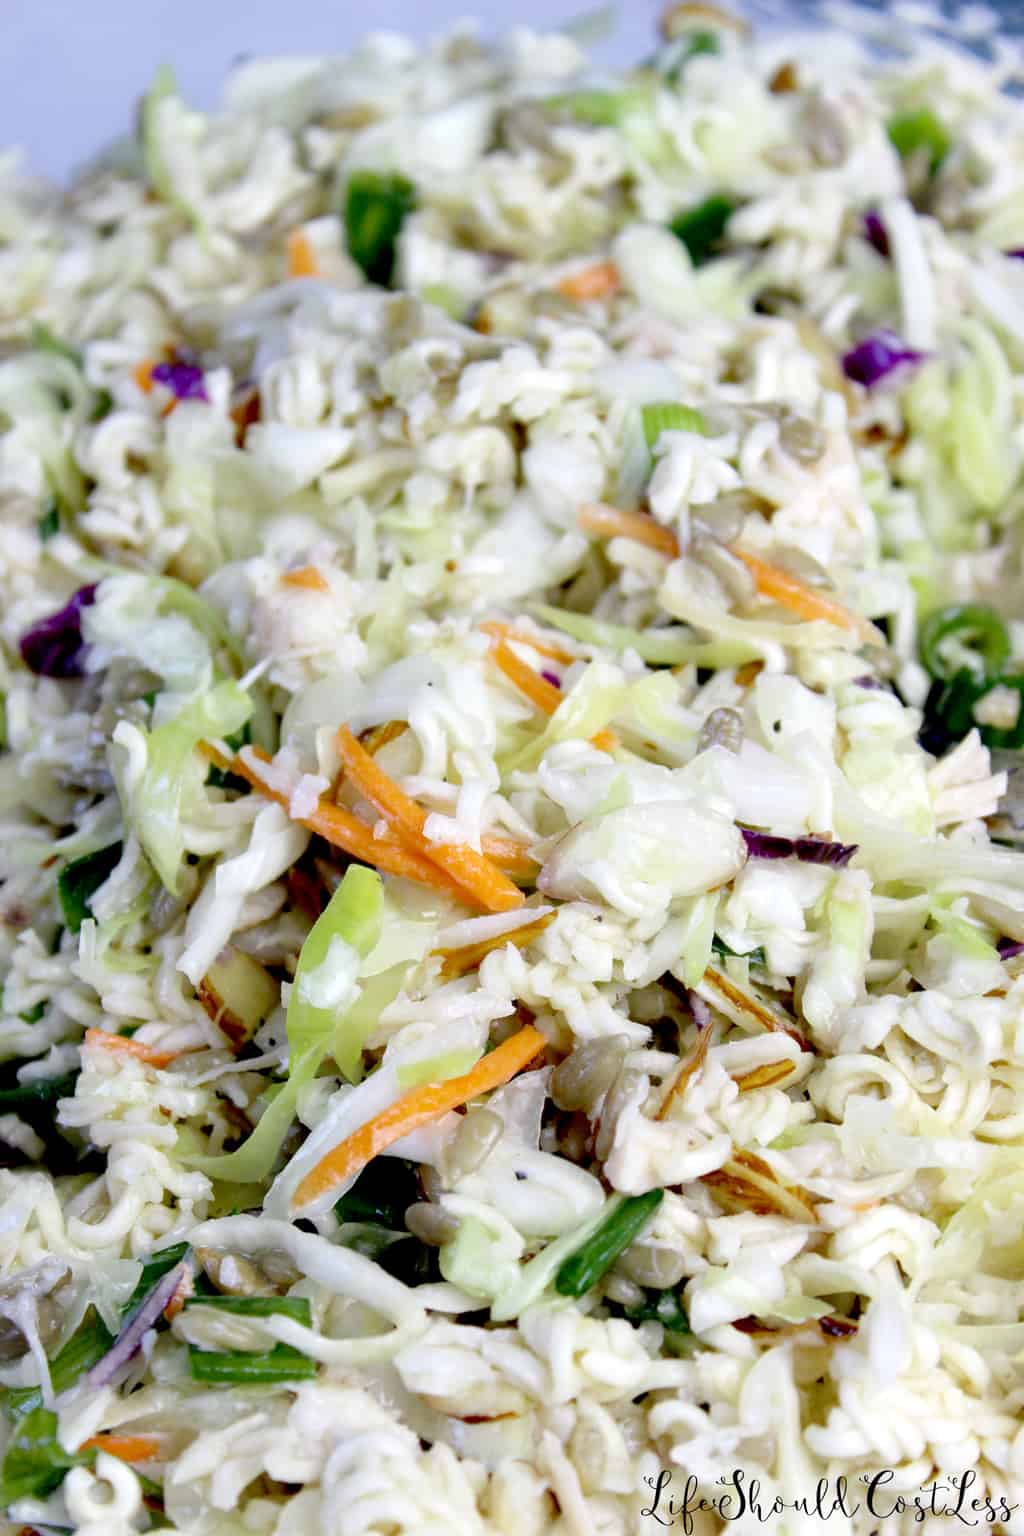 How to make oriental chicken salad with top ramen noodles and coleslaw.